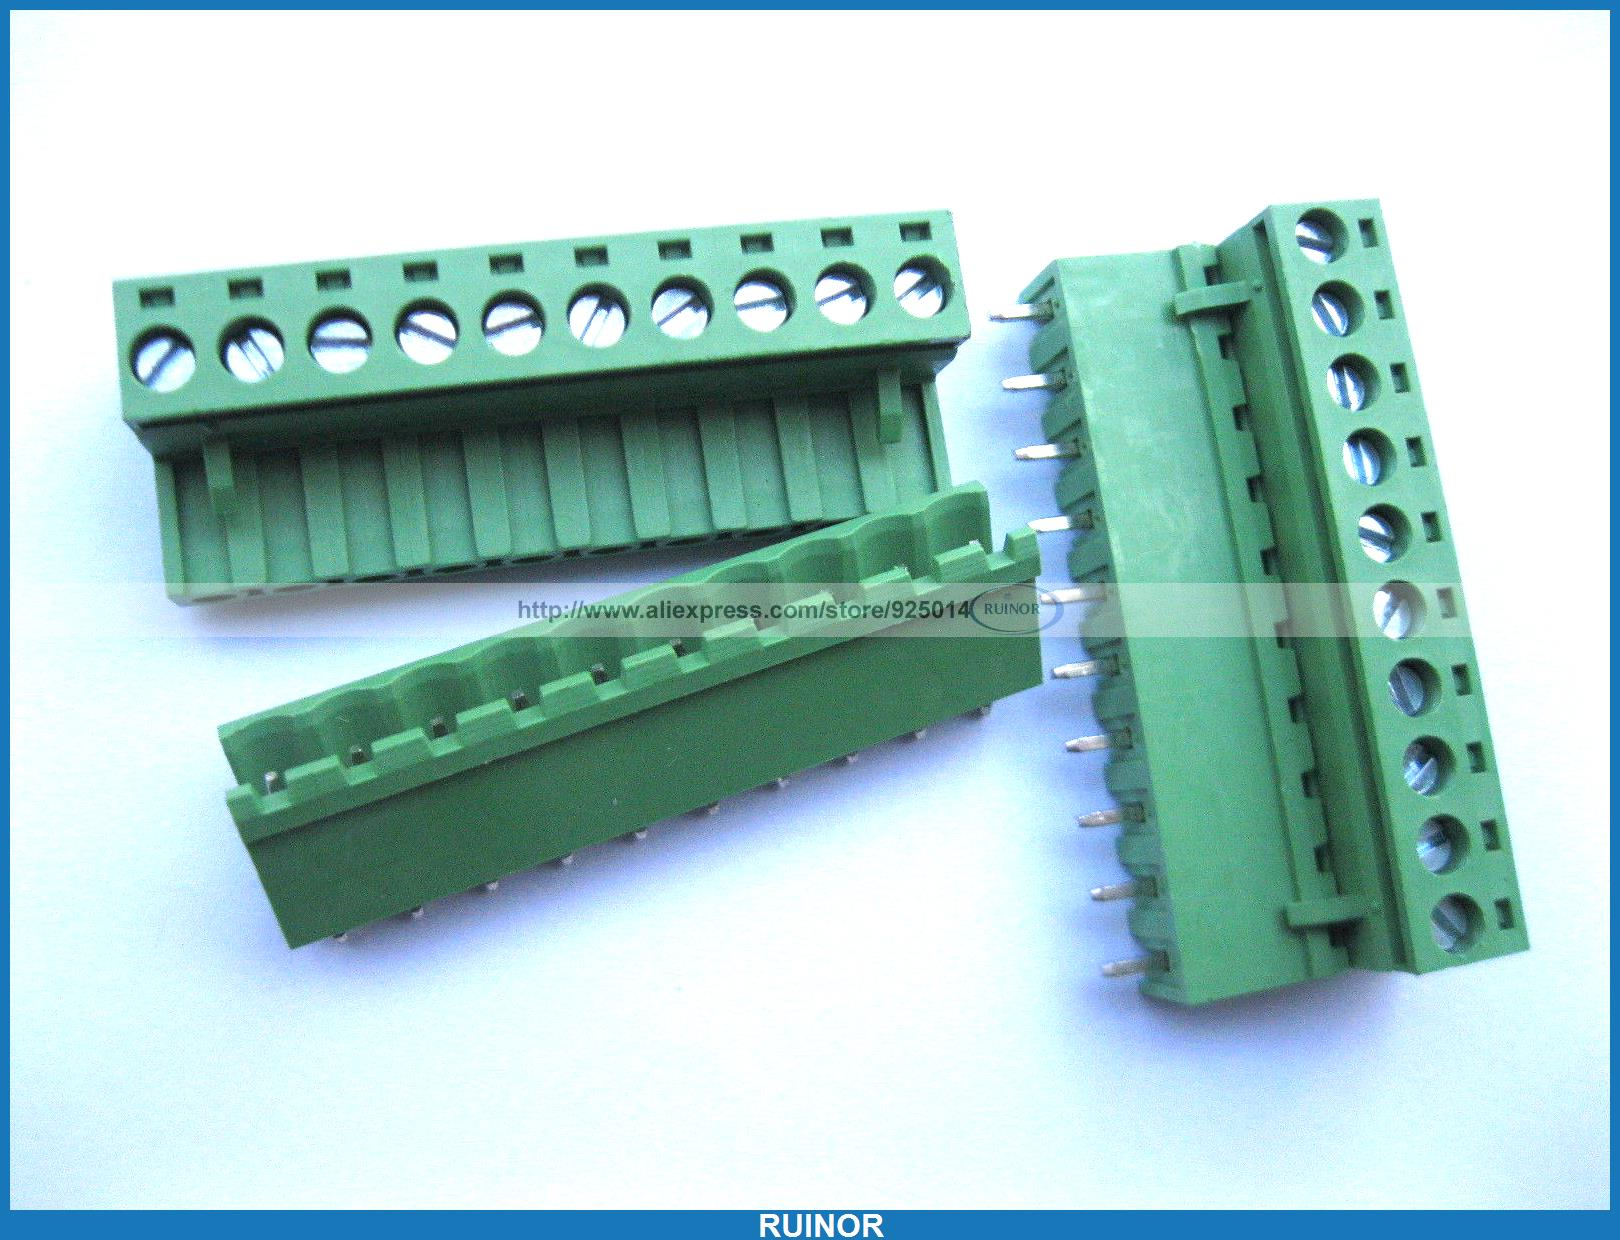 50 Pcs 5 08mm Straight 10 Pin Screw Terminal Block Connector Pluggable Green 5 pcs 400v 20a 7 position screw barrier terminal block bar connector replacement